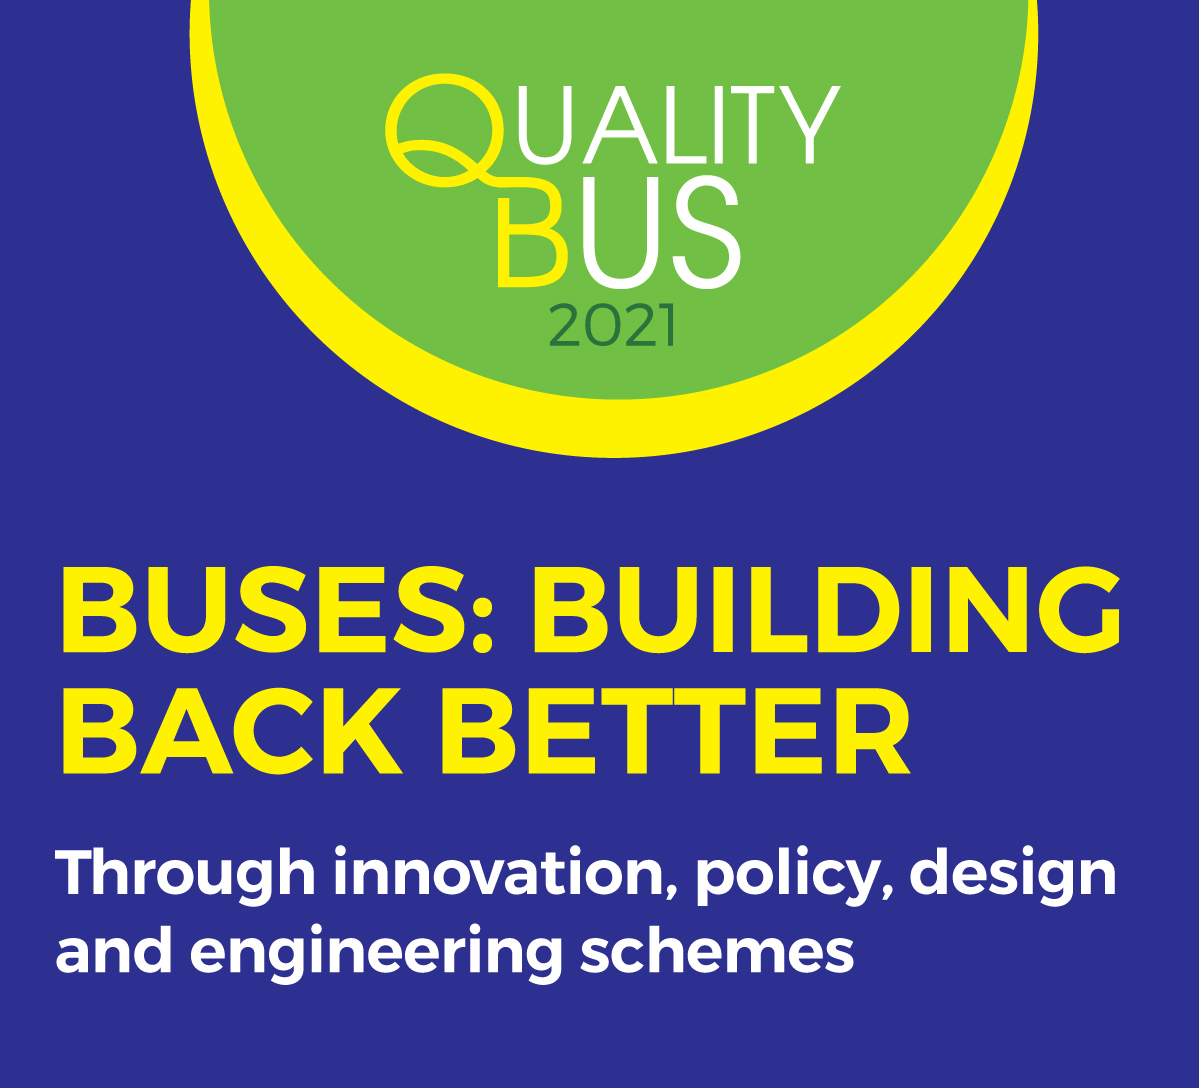 Quality Bus 2021 - Buses: Building Back Better